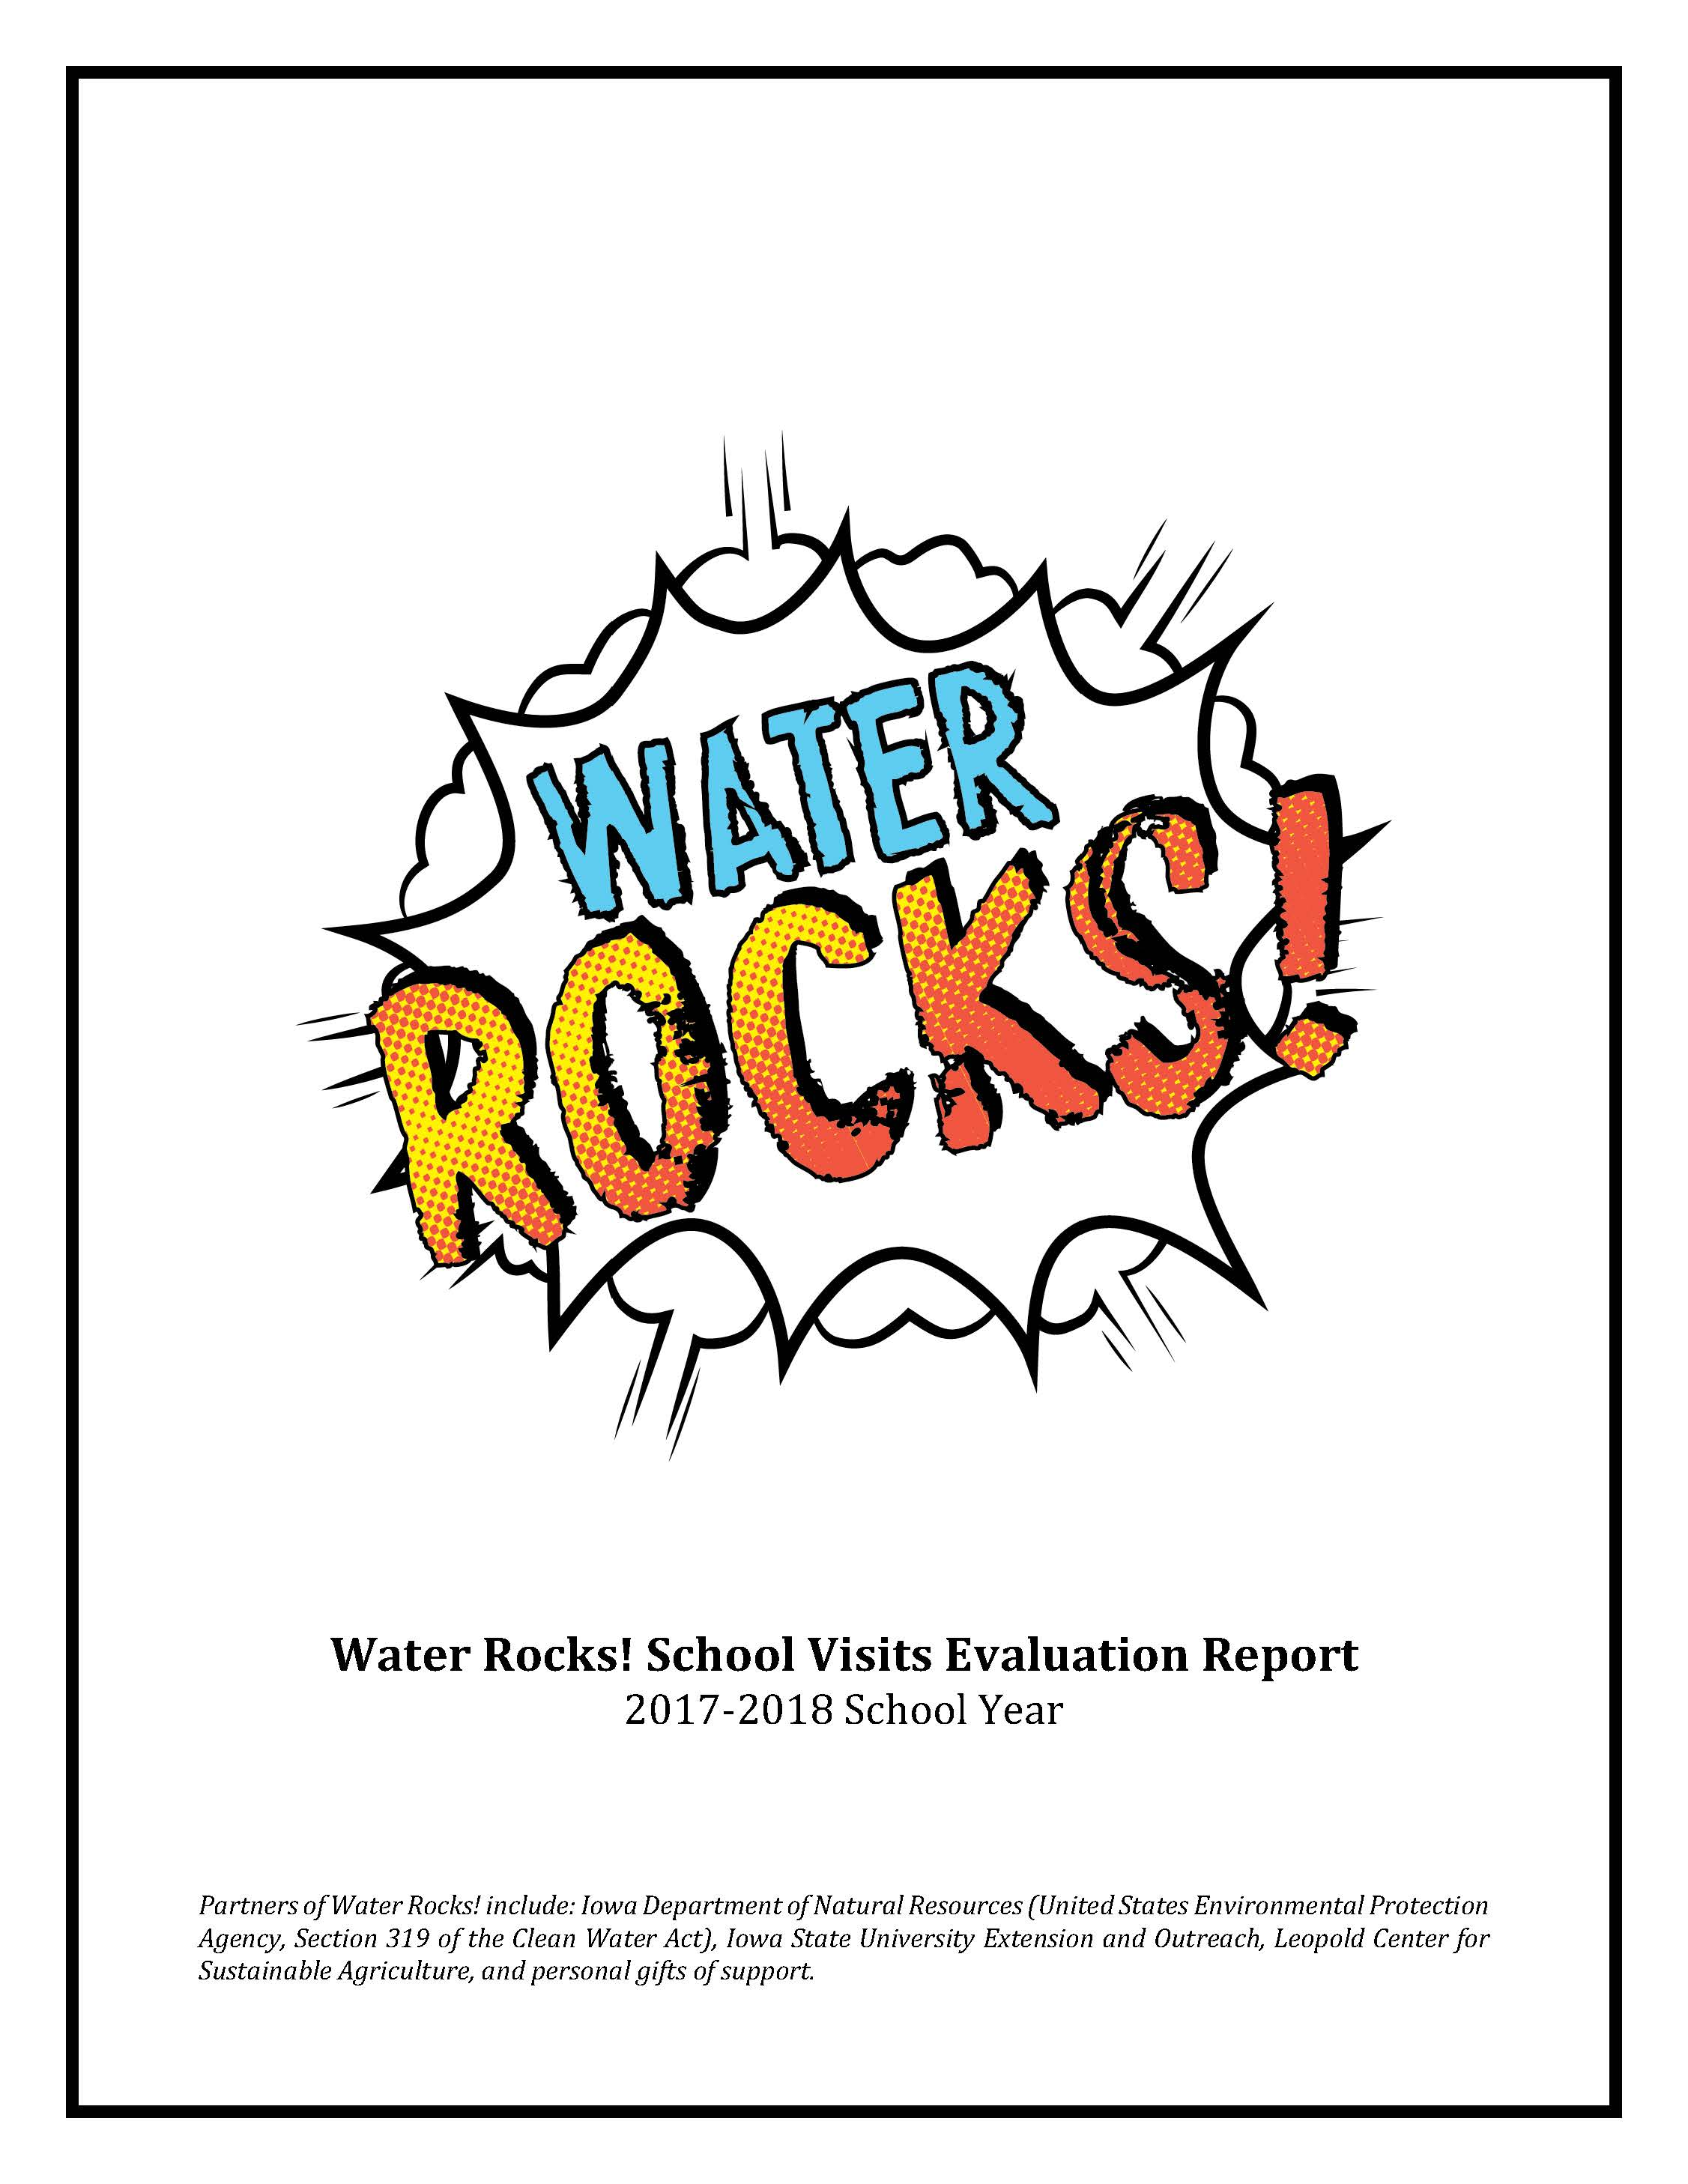 environment iowa learning farms Resume Header Examples water rocks delivers lessons about watersheds wetlands soil pollinators and biodiversity to students in kindergarten through eighth grade